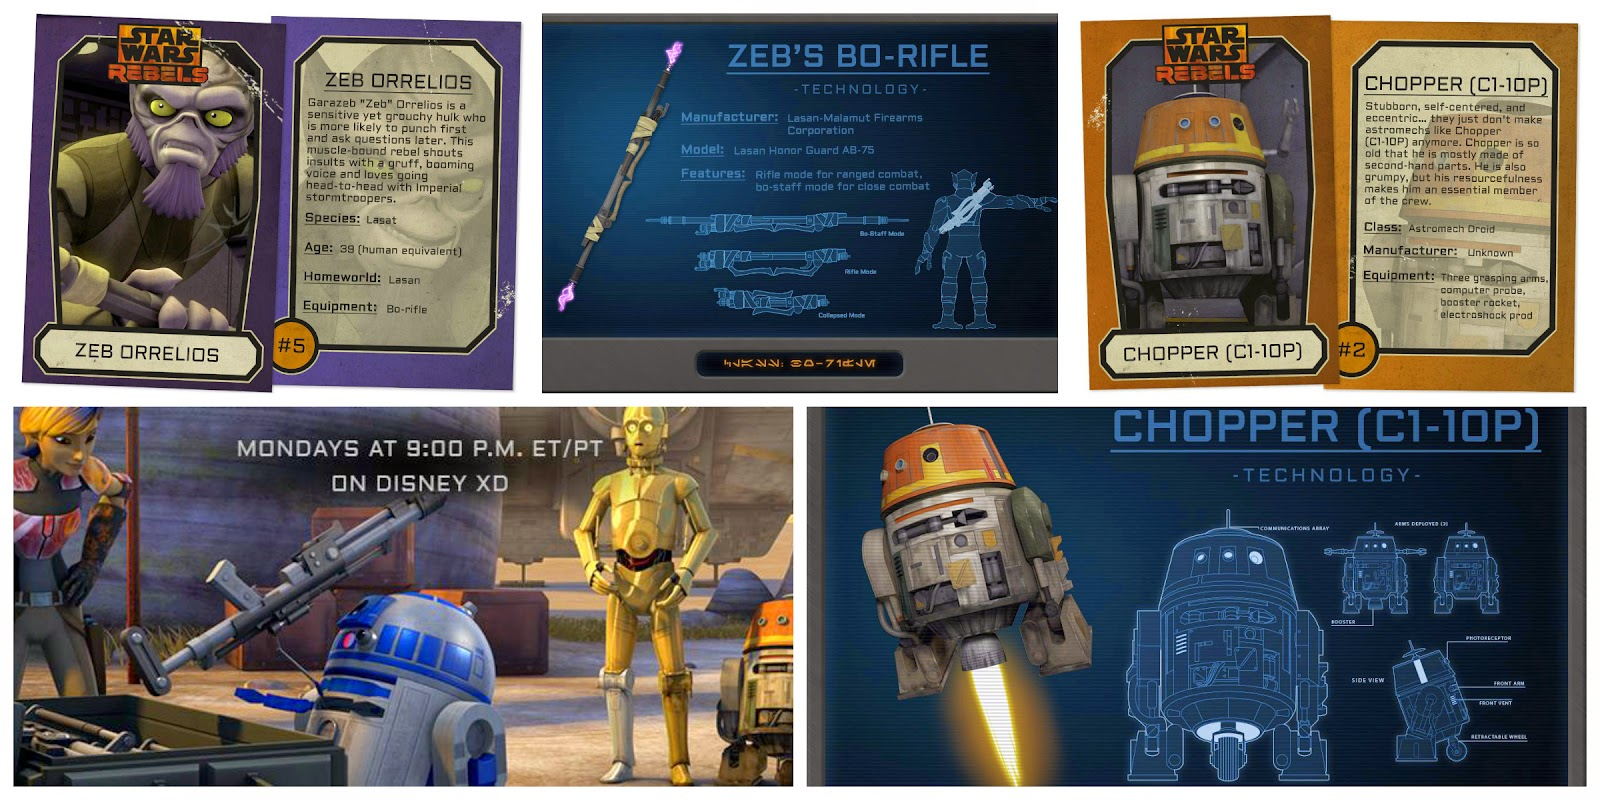 Action, Adventure, Animated, Disney, Dvd, family, kids, movie, new release, rebels, review, Science Fiction, star wars,